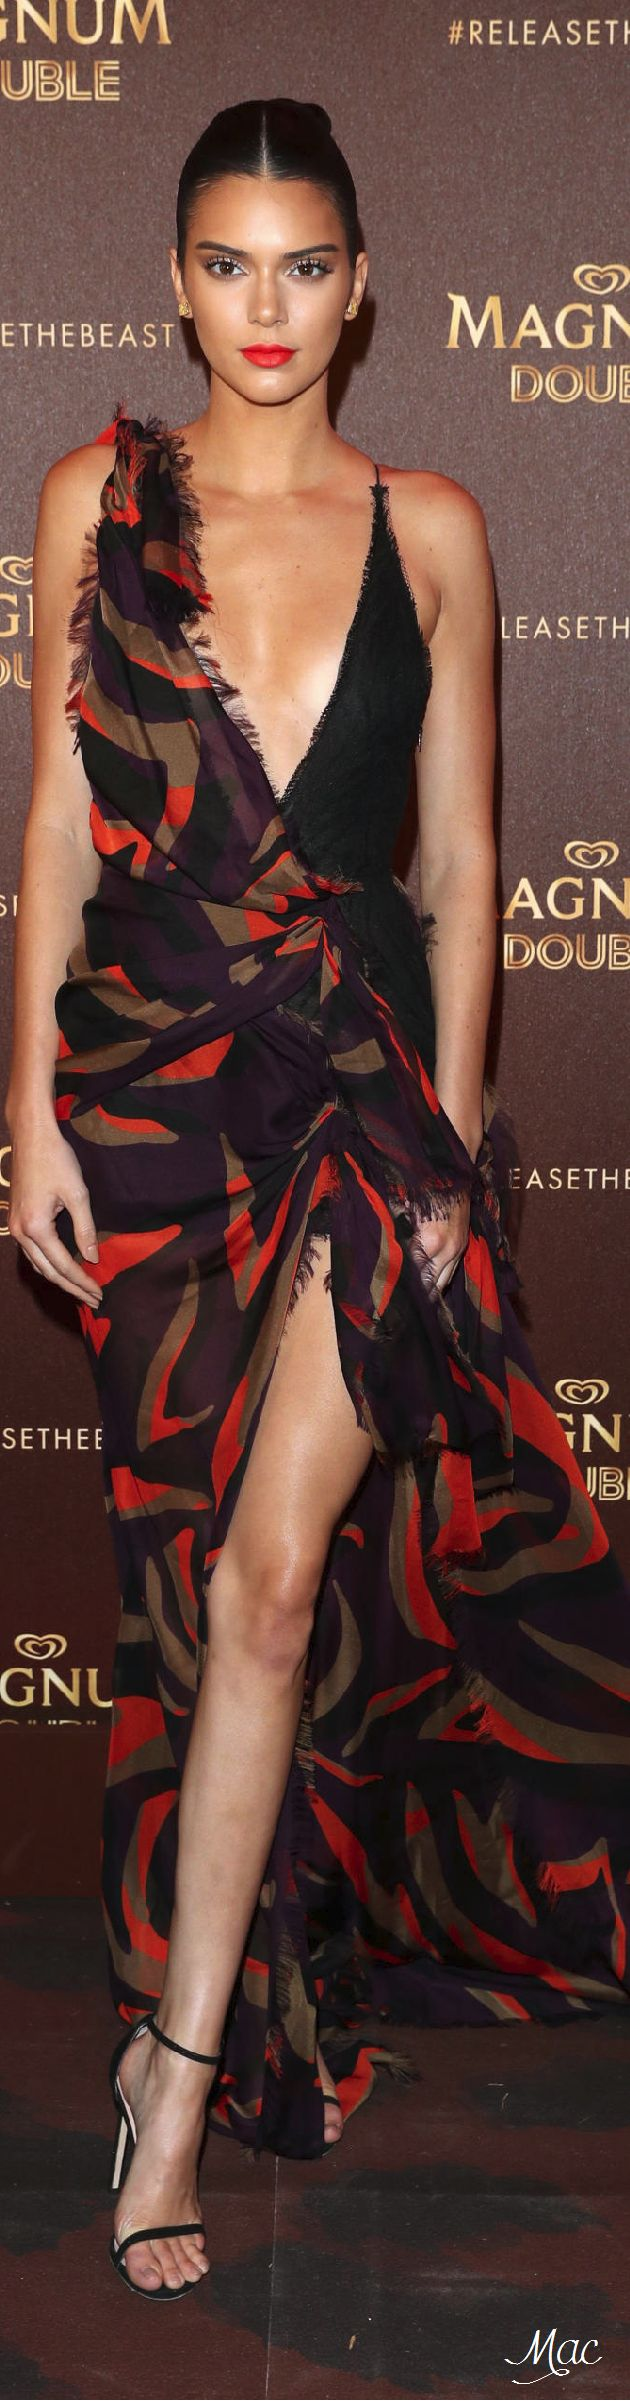 Cannes 2016: Kendall Jenner in Versace